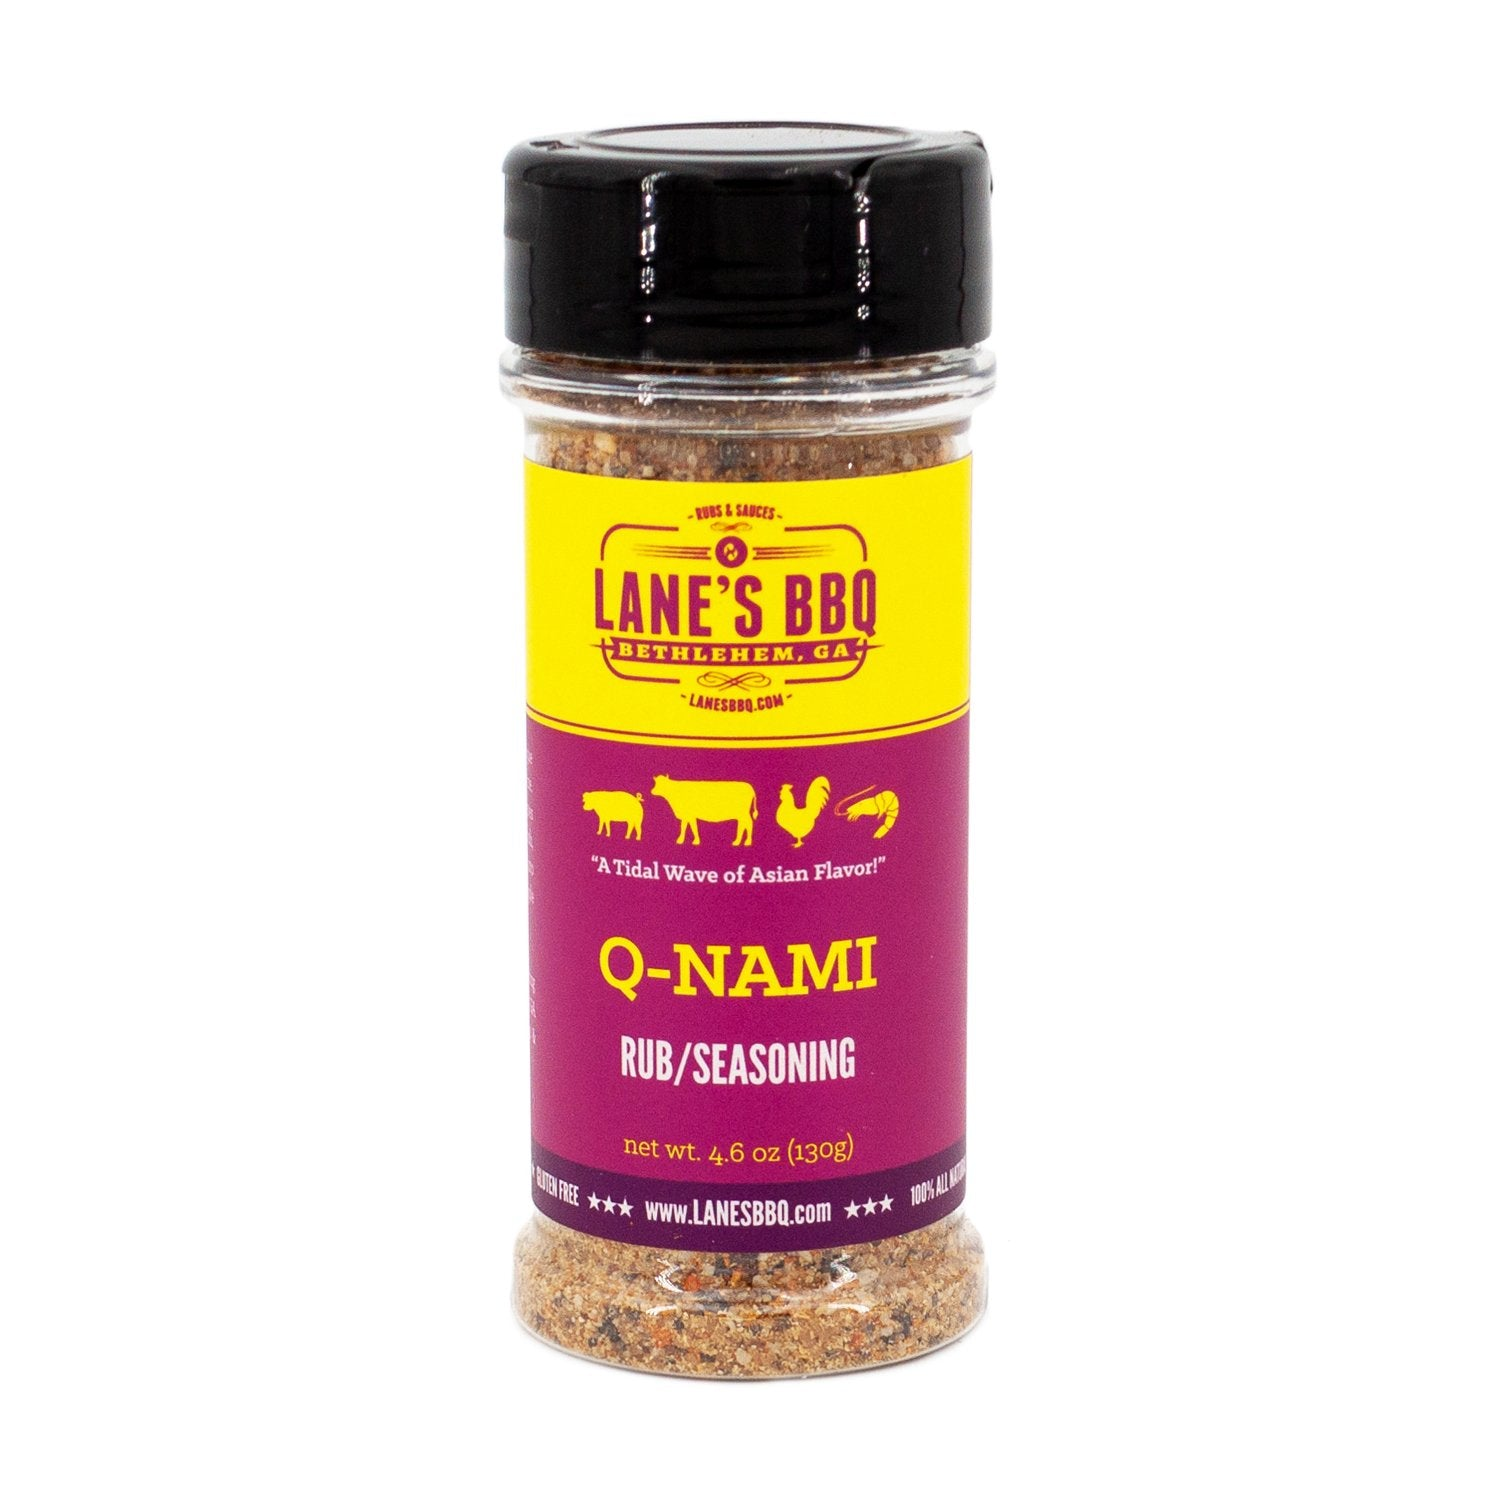 Lane's BBQ - Q-Nami Rub - 4.6oz